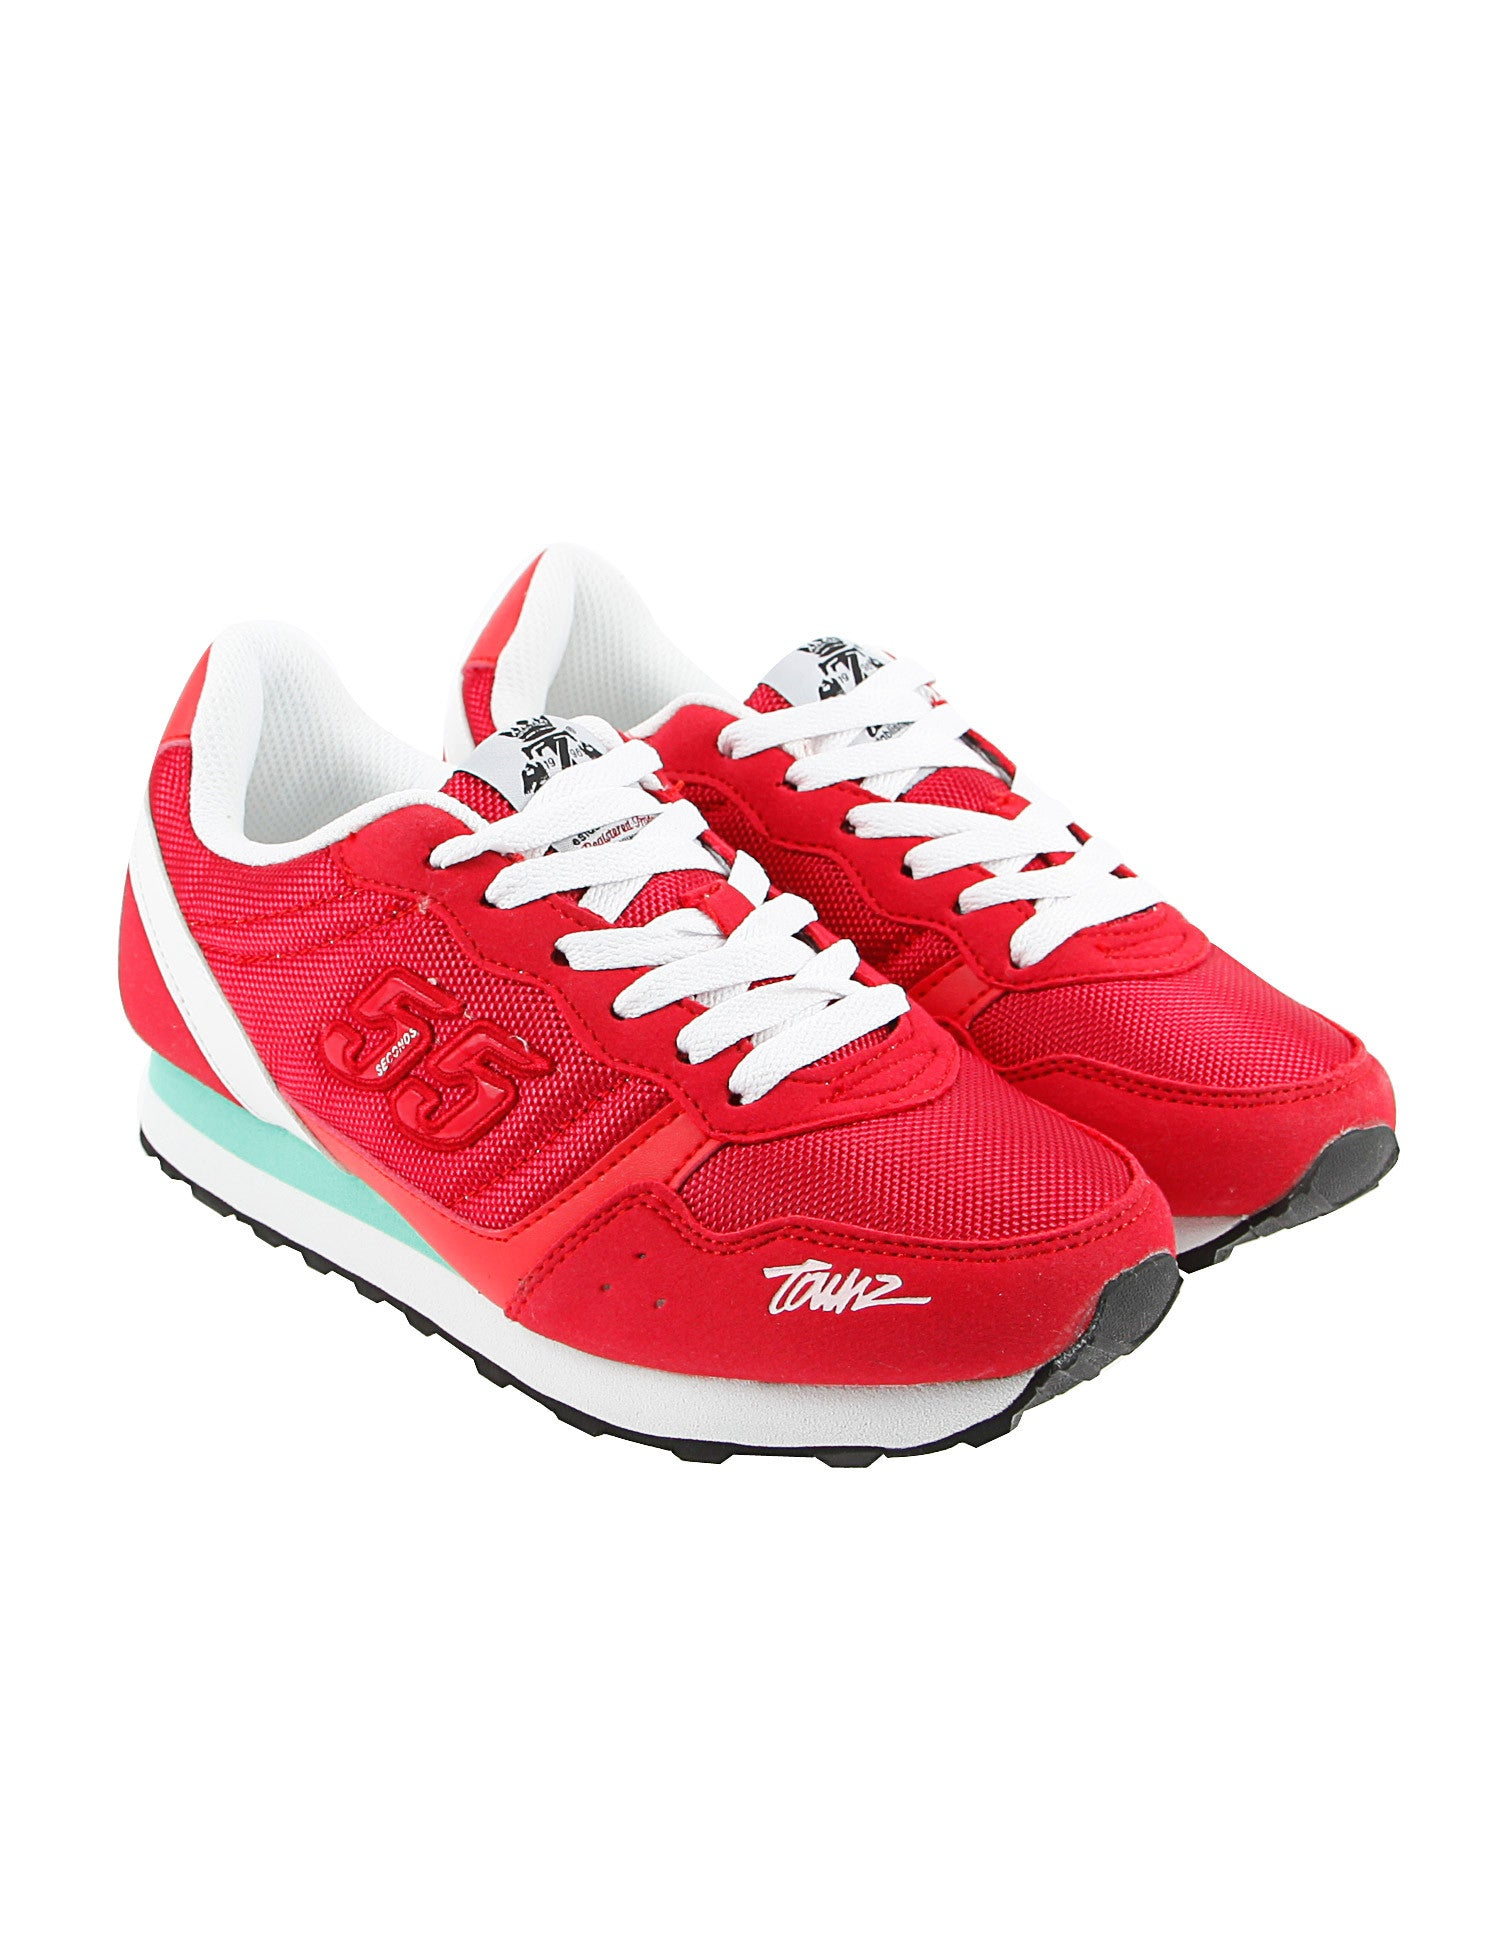 Townz Kids Shoes G987 Red